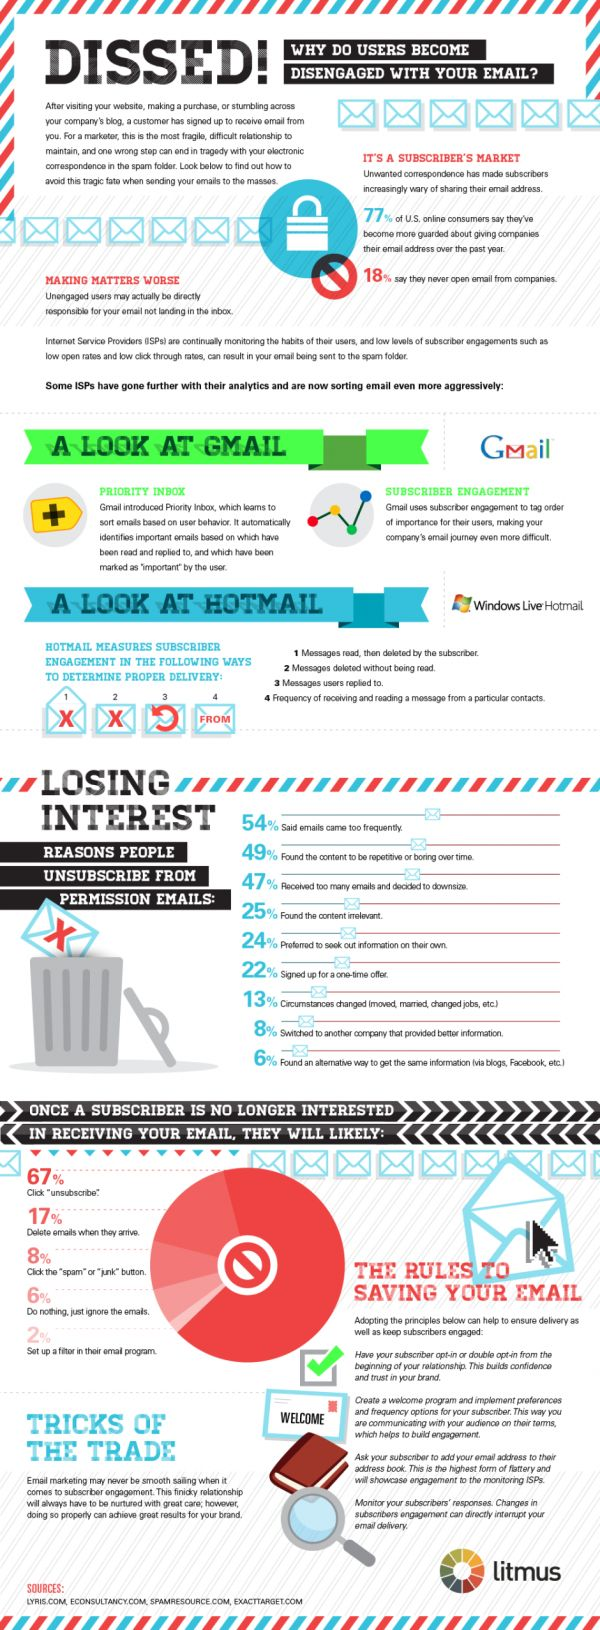 Why Do Readers Lose Interest In Email Marketing? #infographic